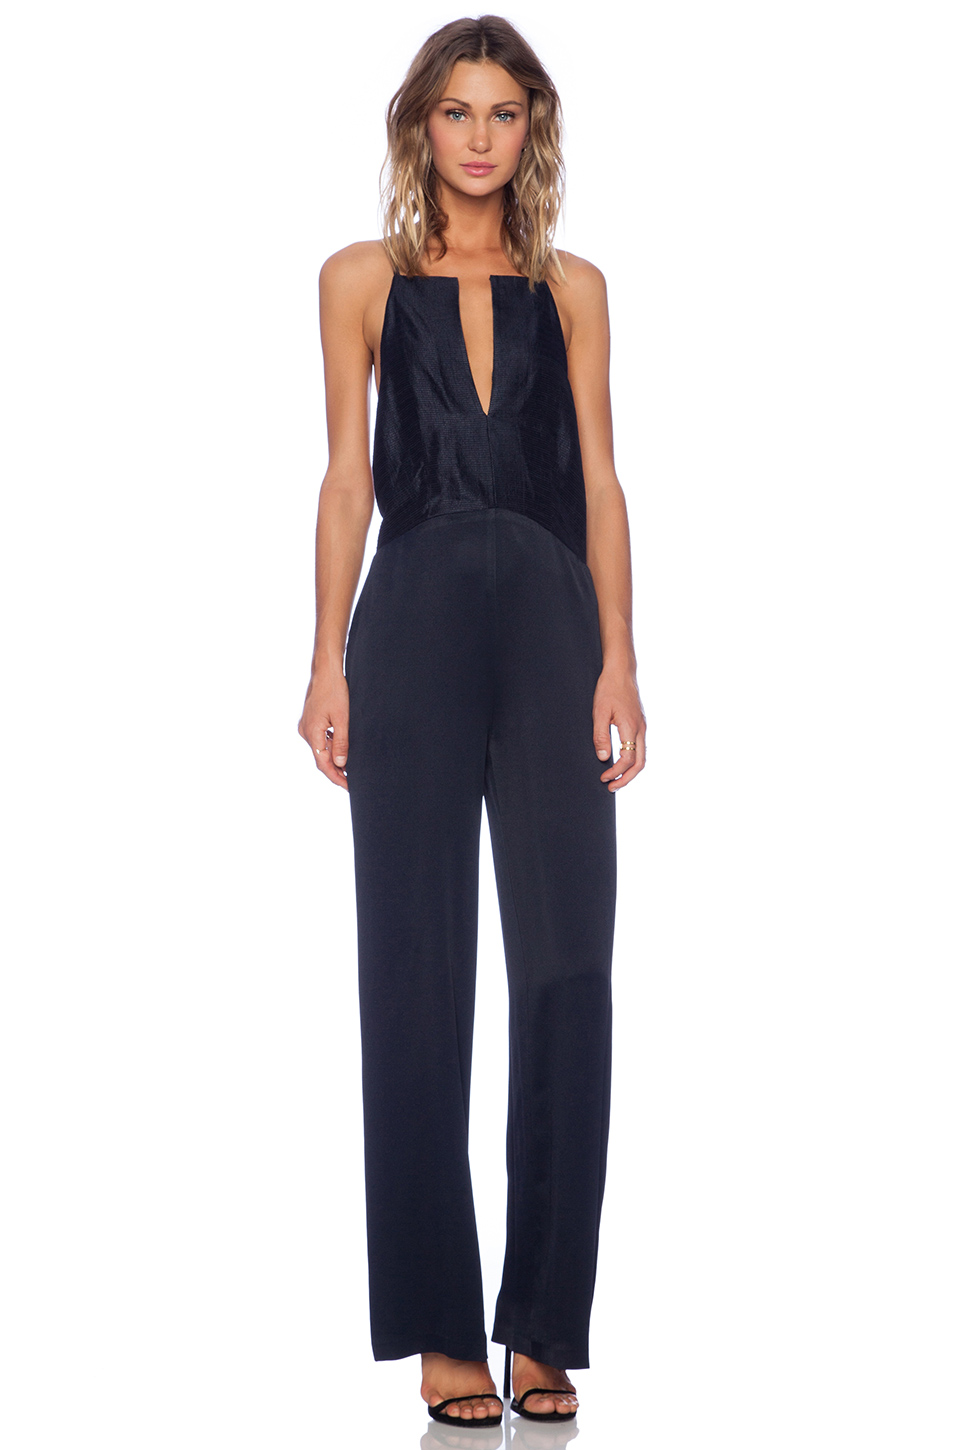 Vivian chan theresa jumpsuit in navy from revolveclothing.com